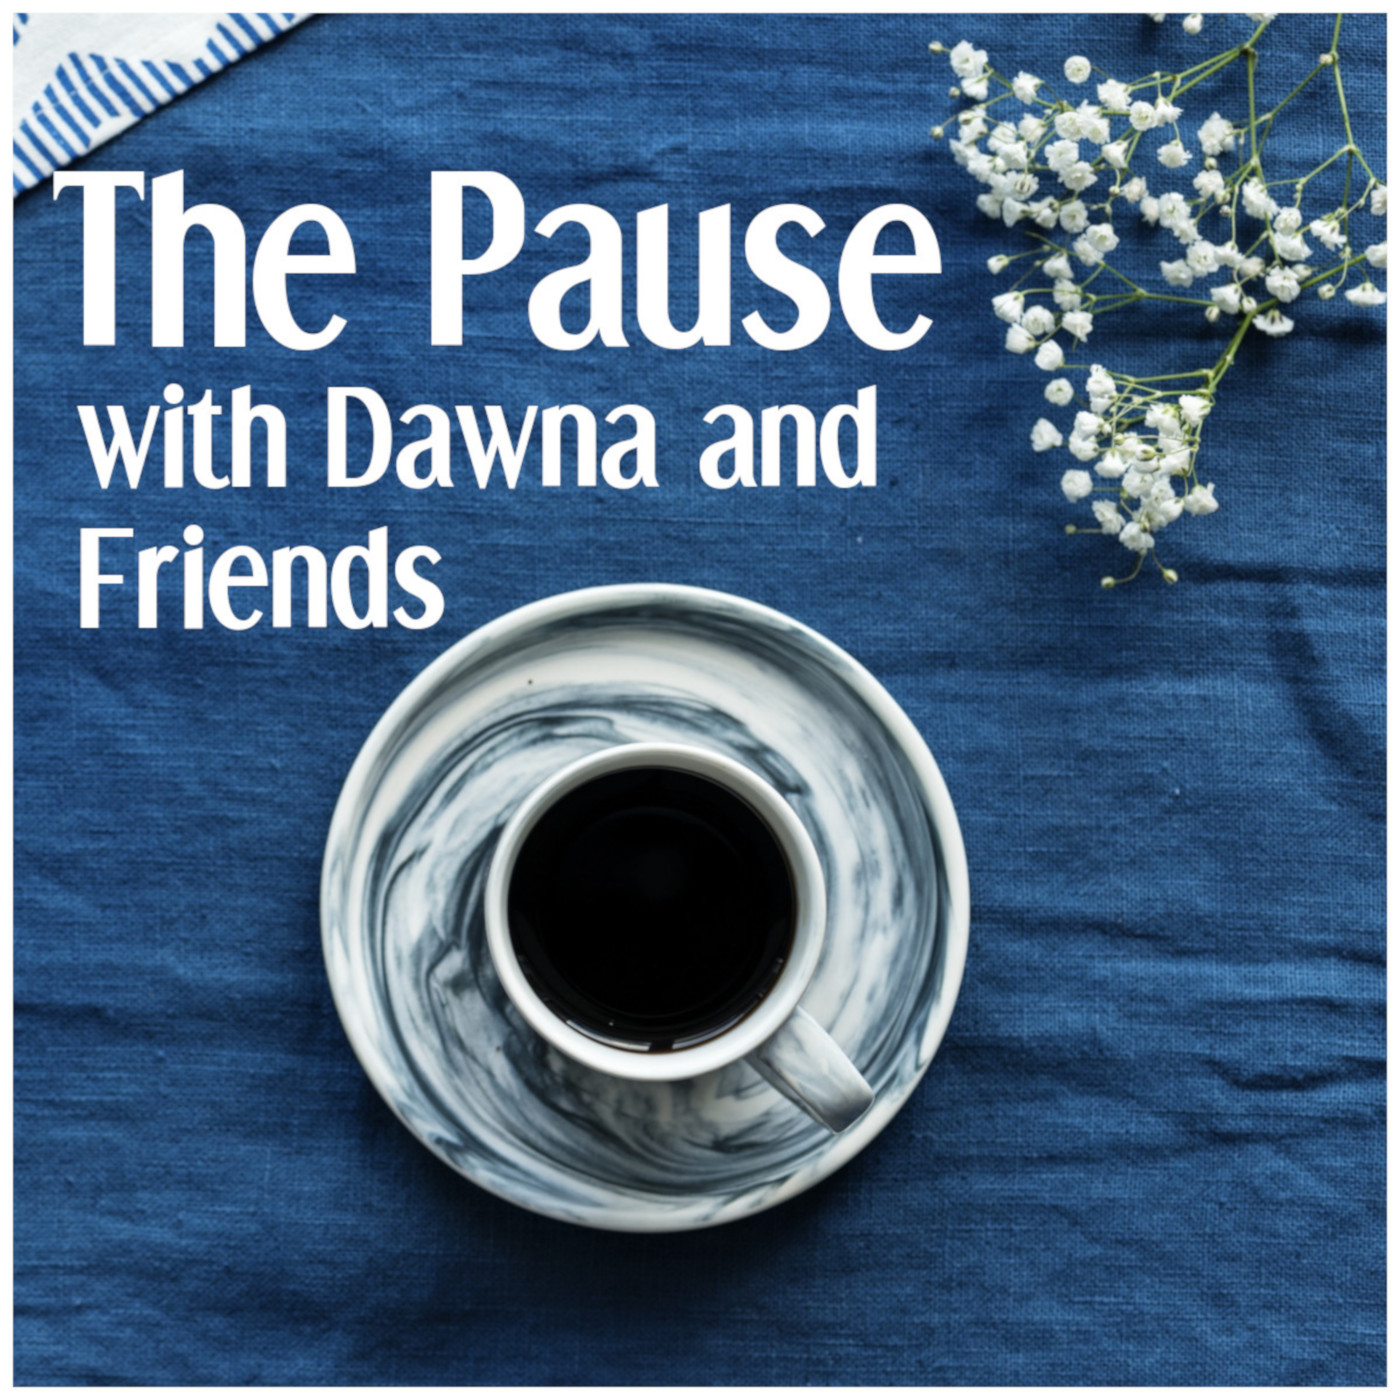 Episode 7: Sandhan: A Talk About Osho and the Spirituality of Abundance